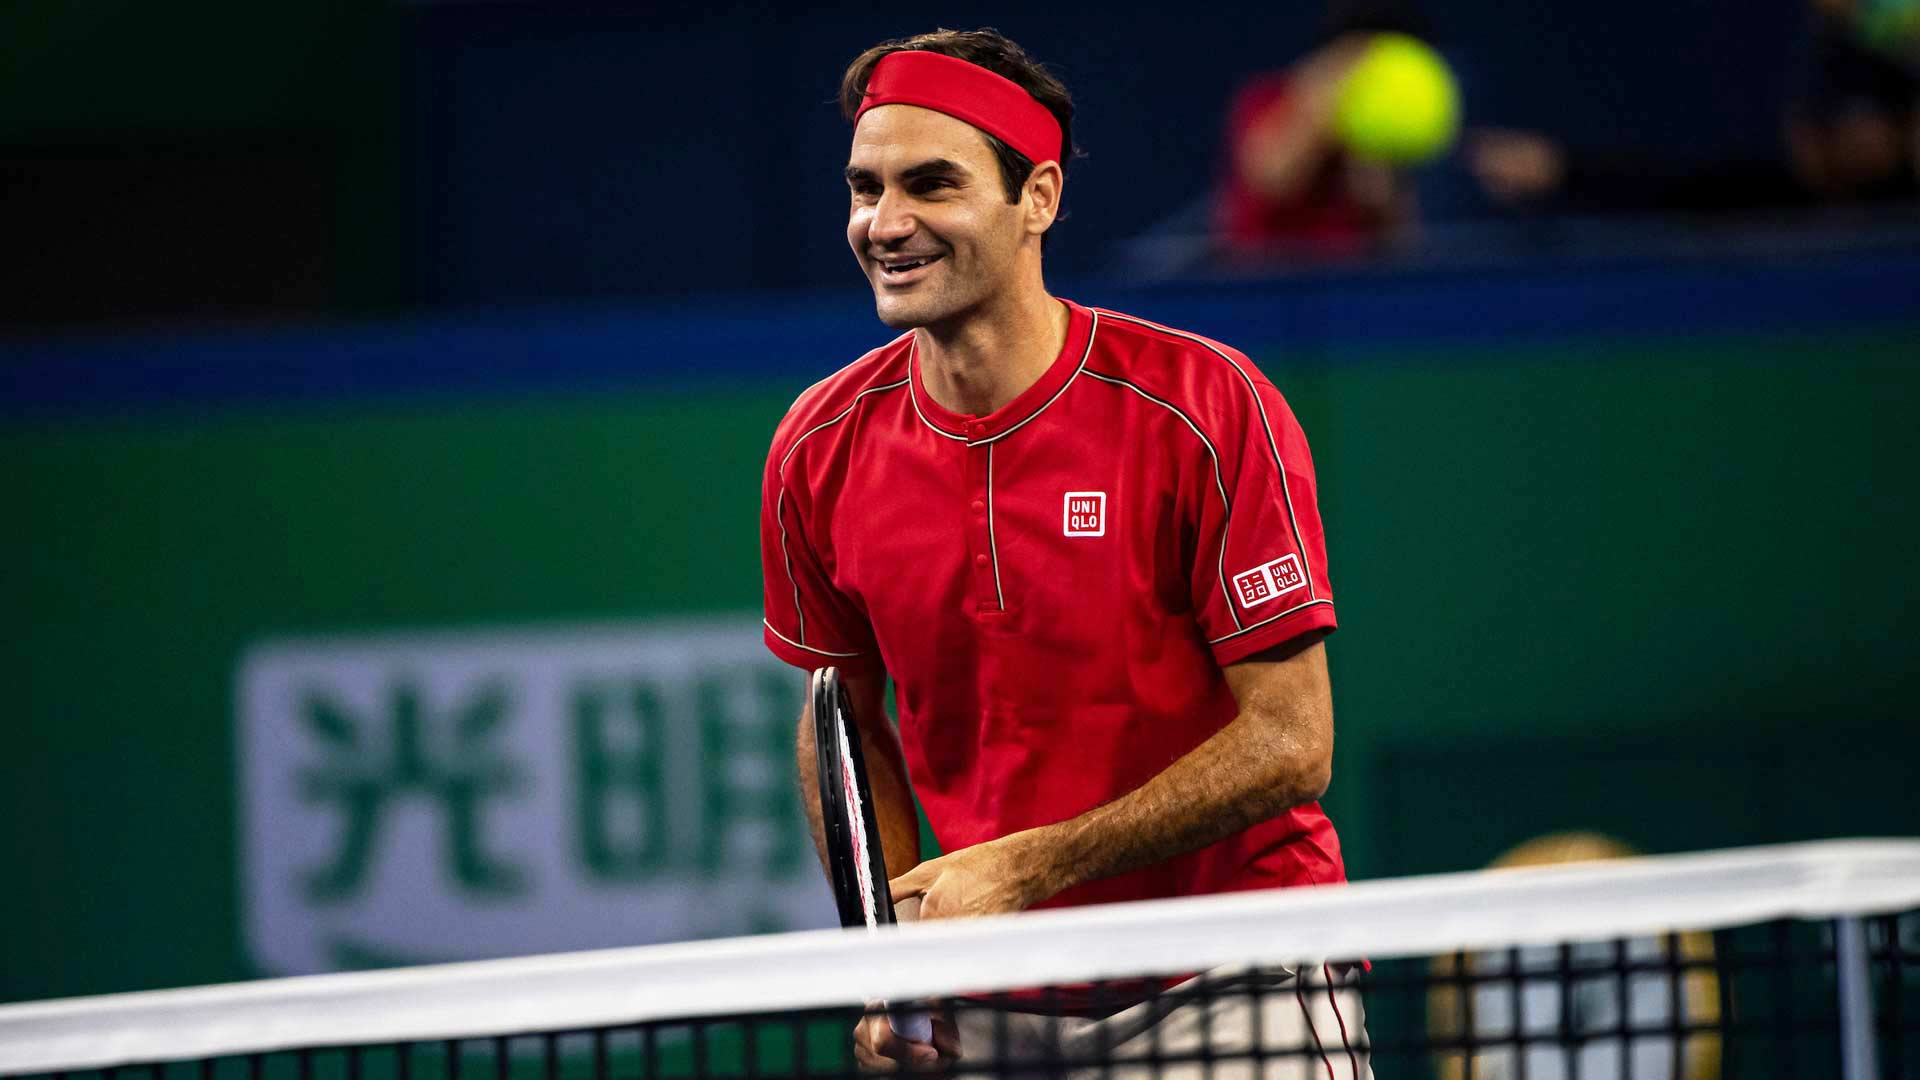 <a href='https://www.atptour.com/en/players/roger-federer/f324/overview'>Roger Federer</a> reacts in Shanghai 2019